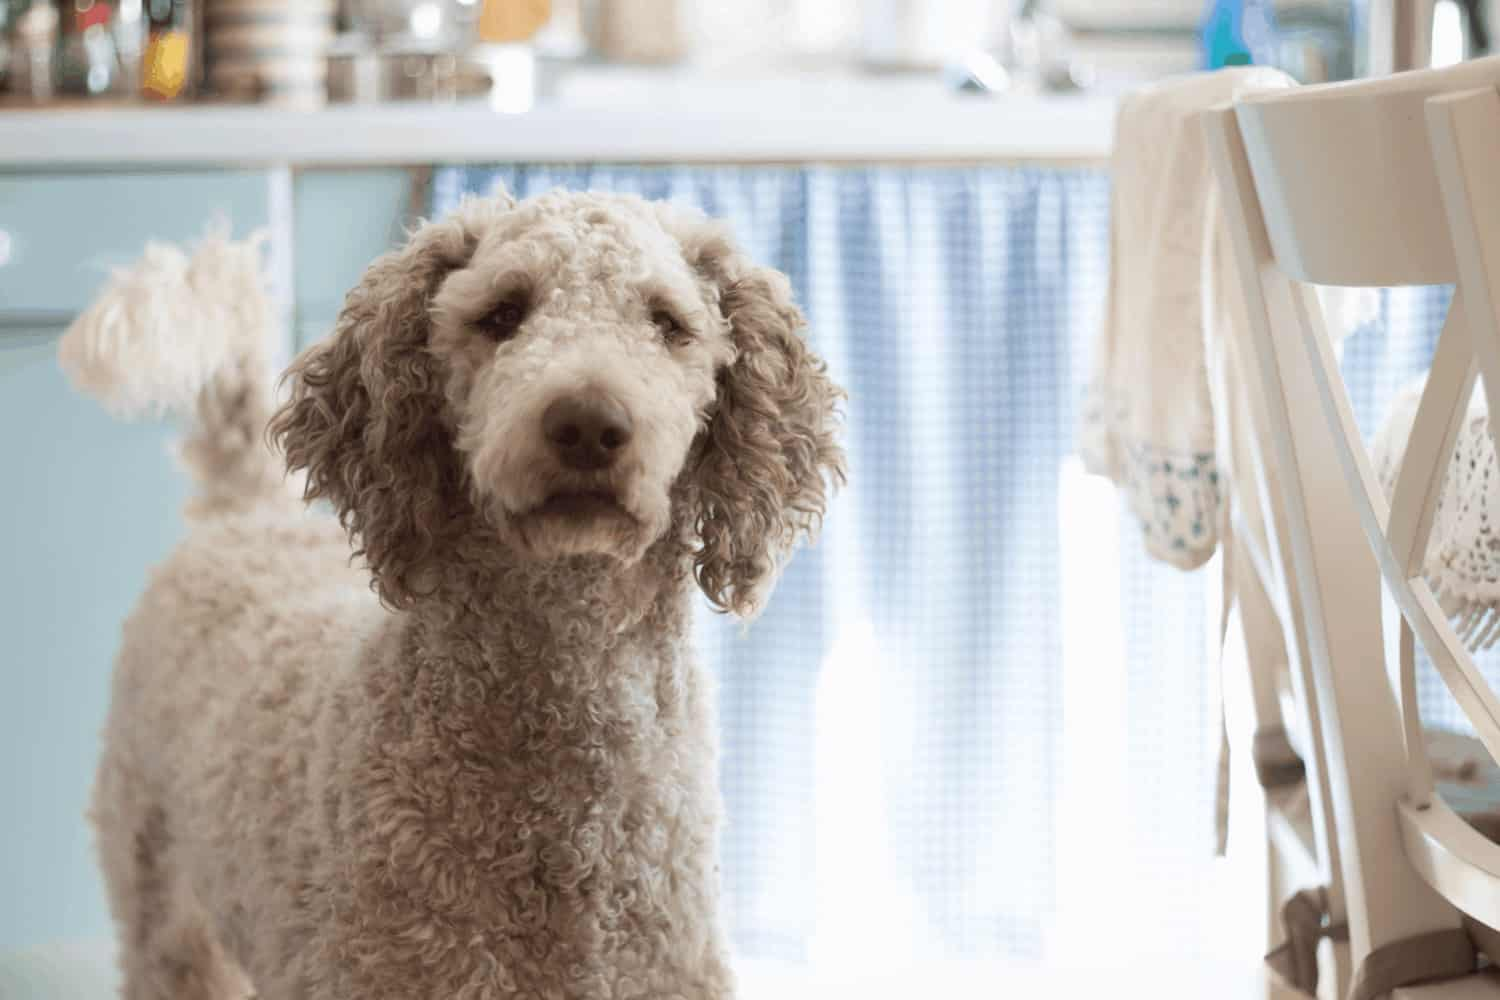 A picture of a poodle staring